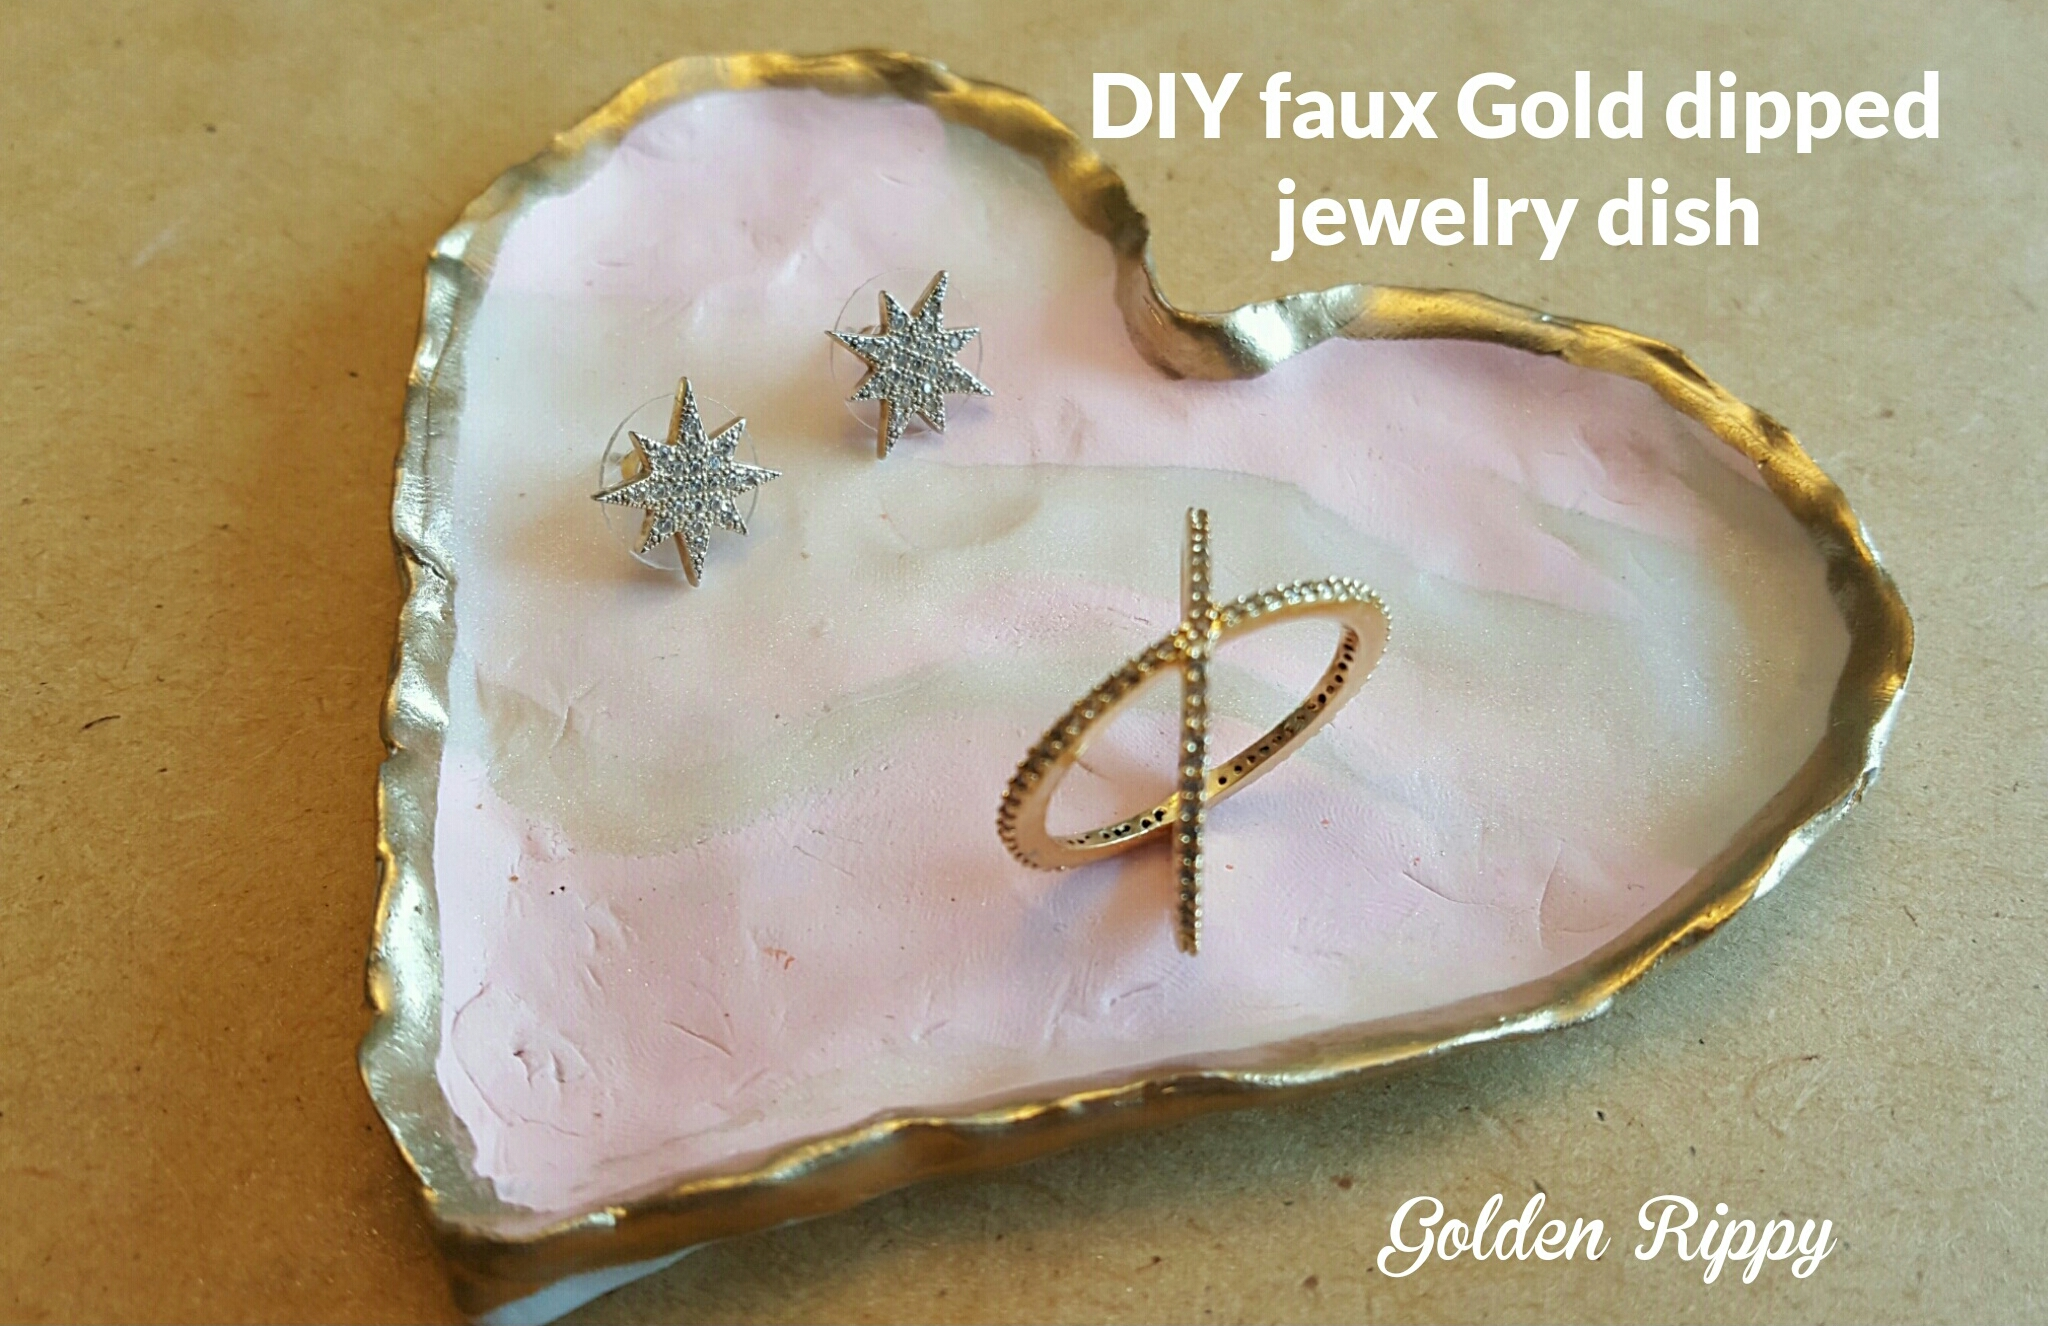 DIY Faux Gold Dipped Jewelry Dish and my 1st RocksBox Golden Rippy